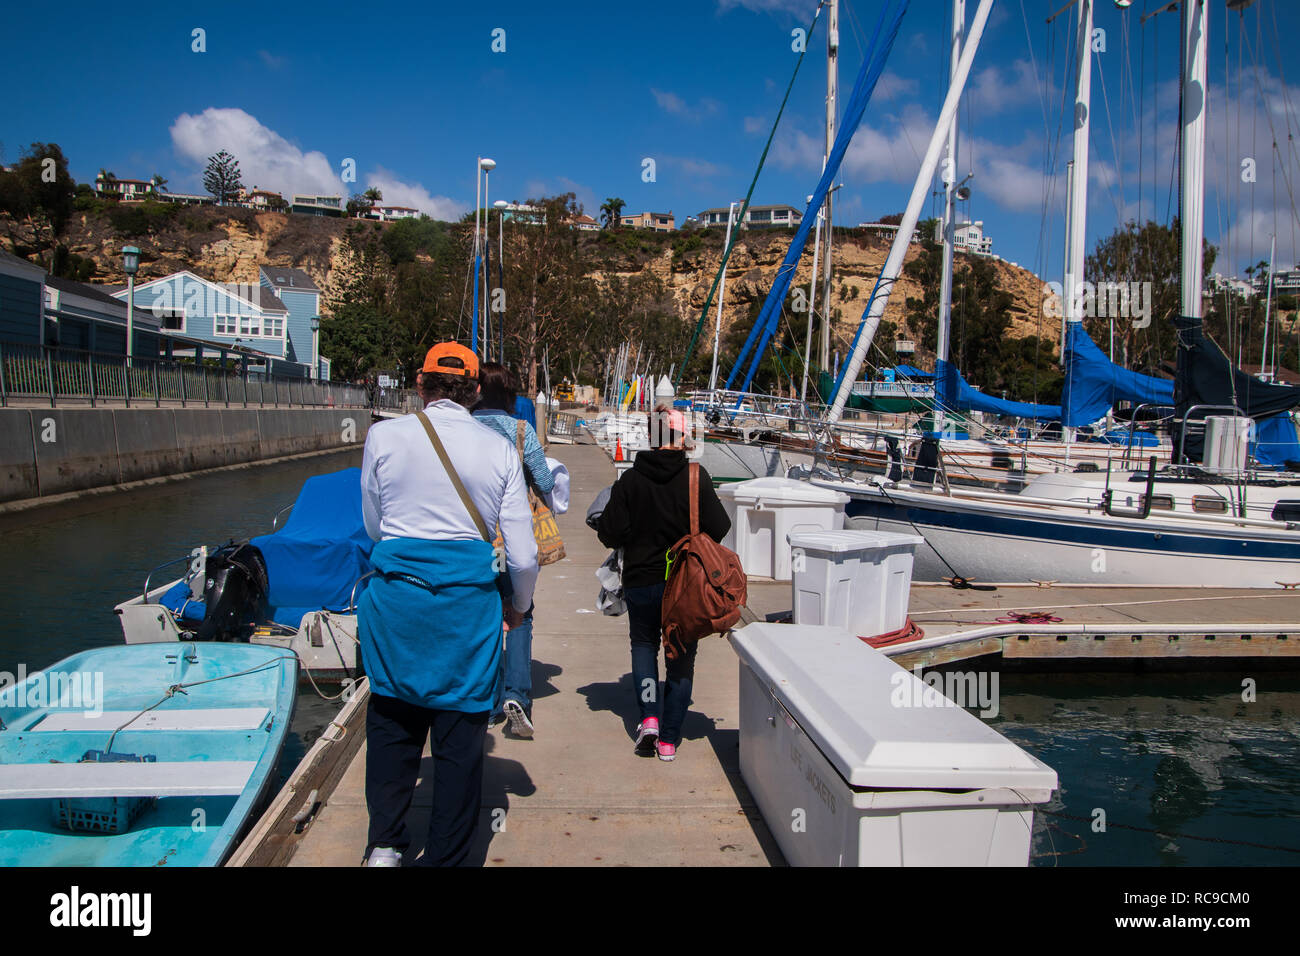 Three adult caucasians, on man and two women, walking away with only their backs visible. Walking on bock past sailboats and small motorboats - Stock Photo